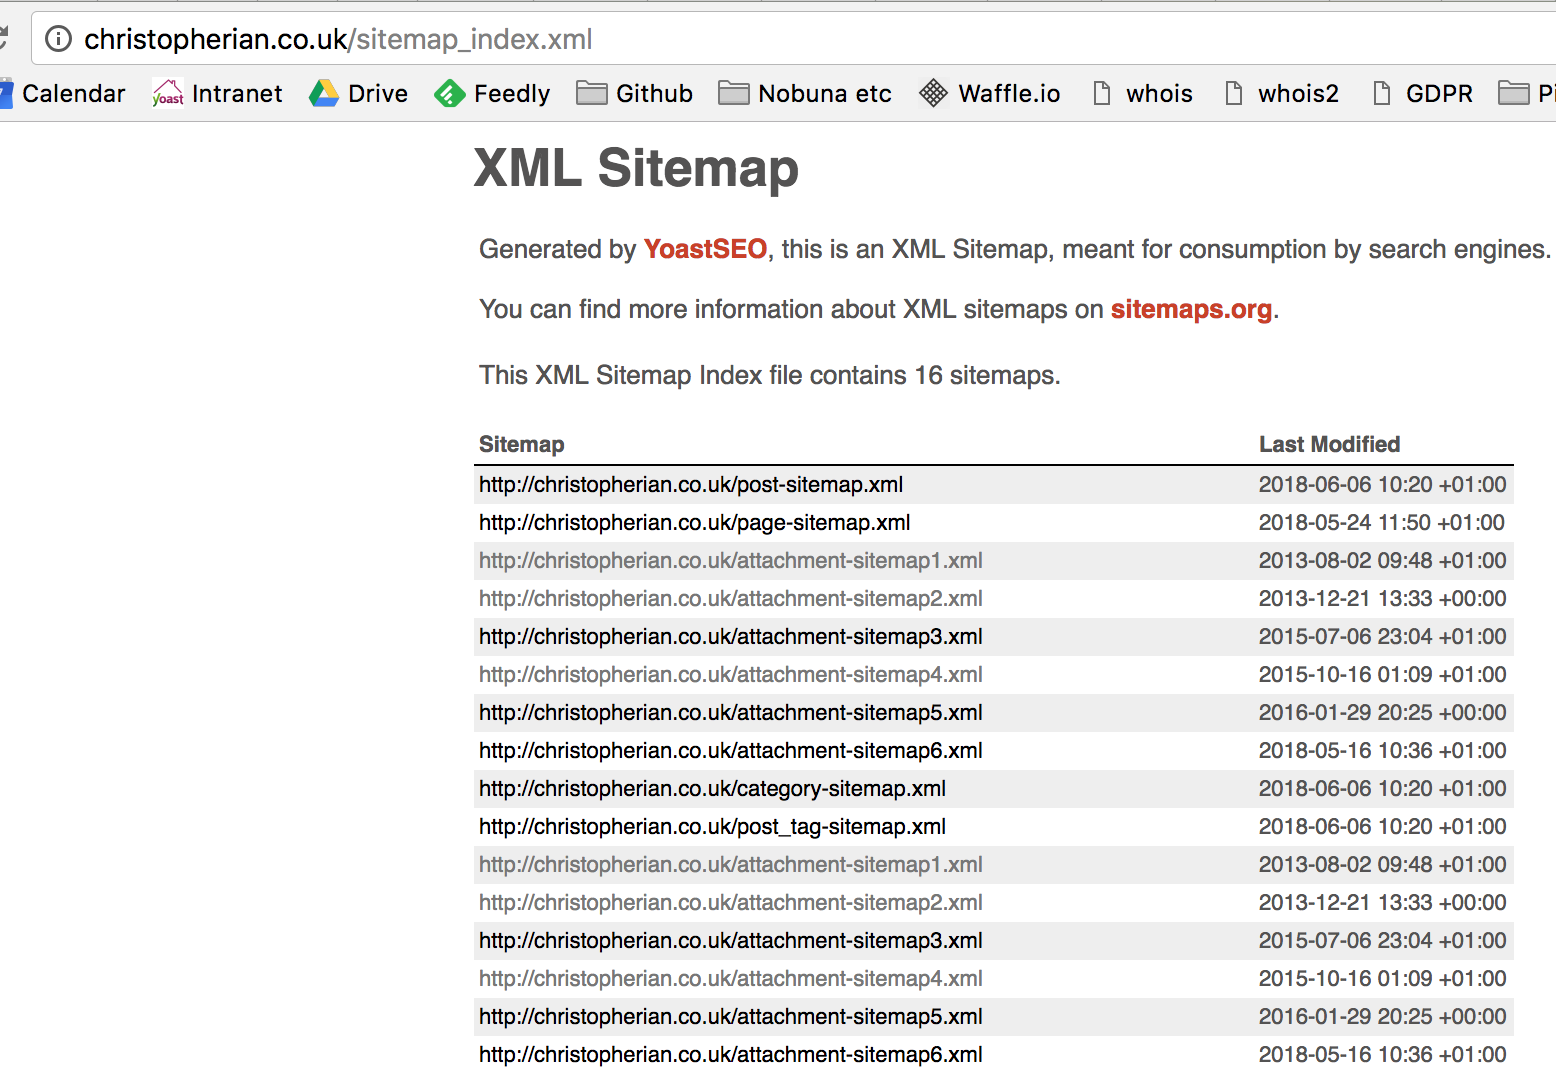 Found two instances where the sitemap_index.xml showed duplicate listings of attachment sitemaps: